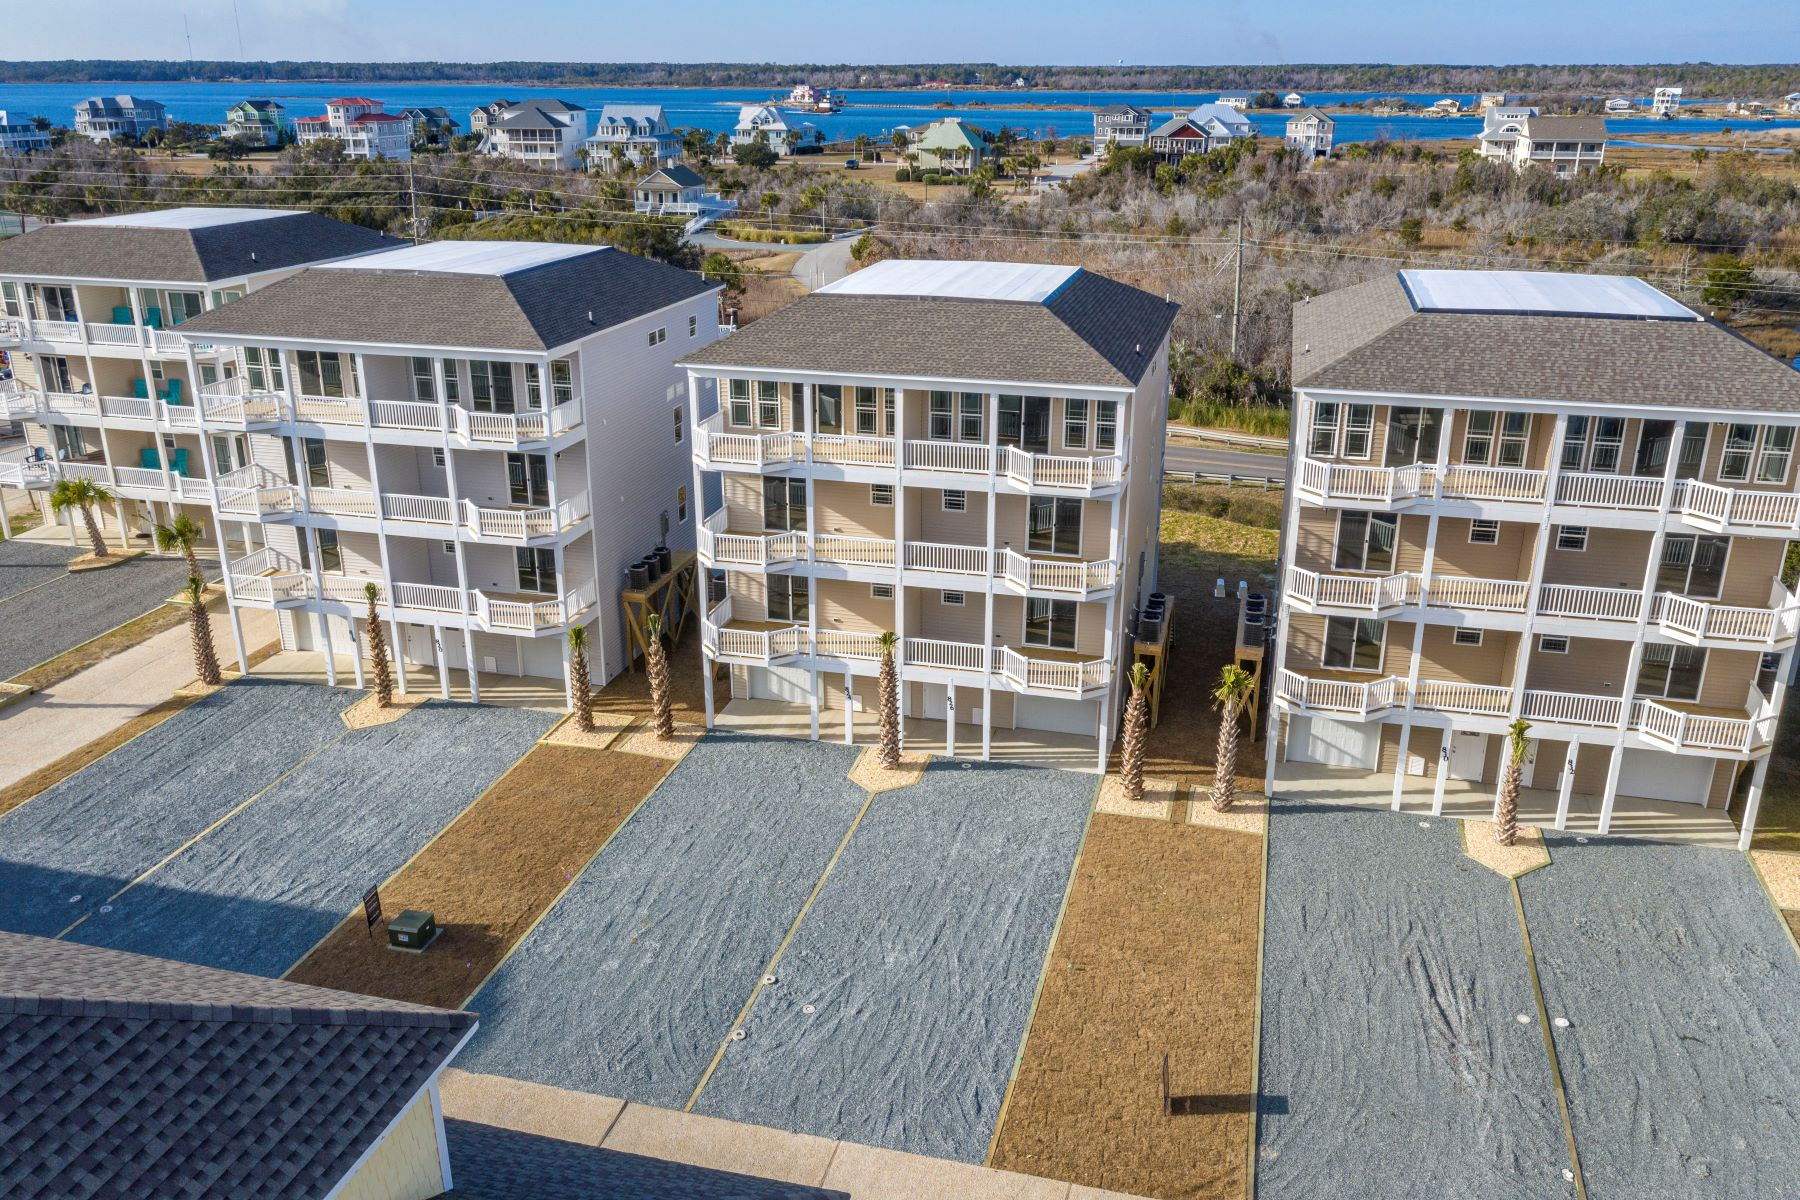 townhouses for Active at Villas By The Sea 830 Villas Drive N Topsail Beach, North Carolina 28460 United States